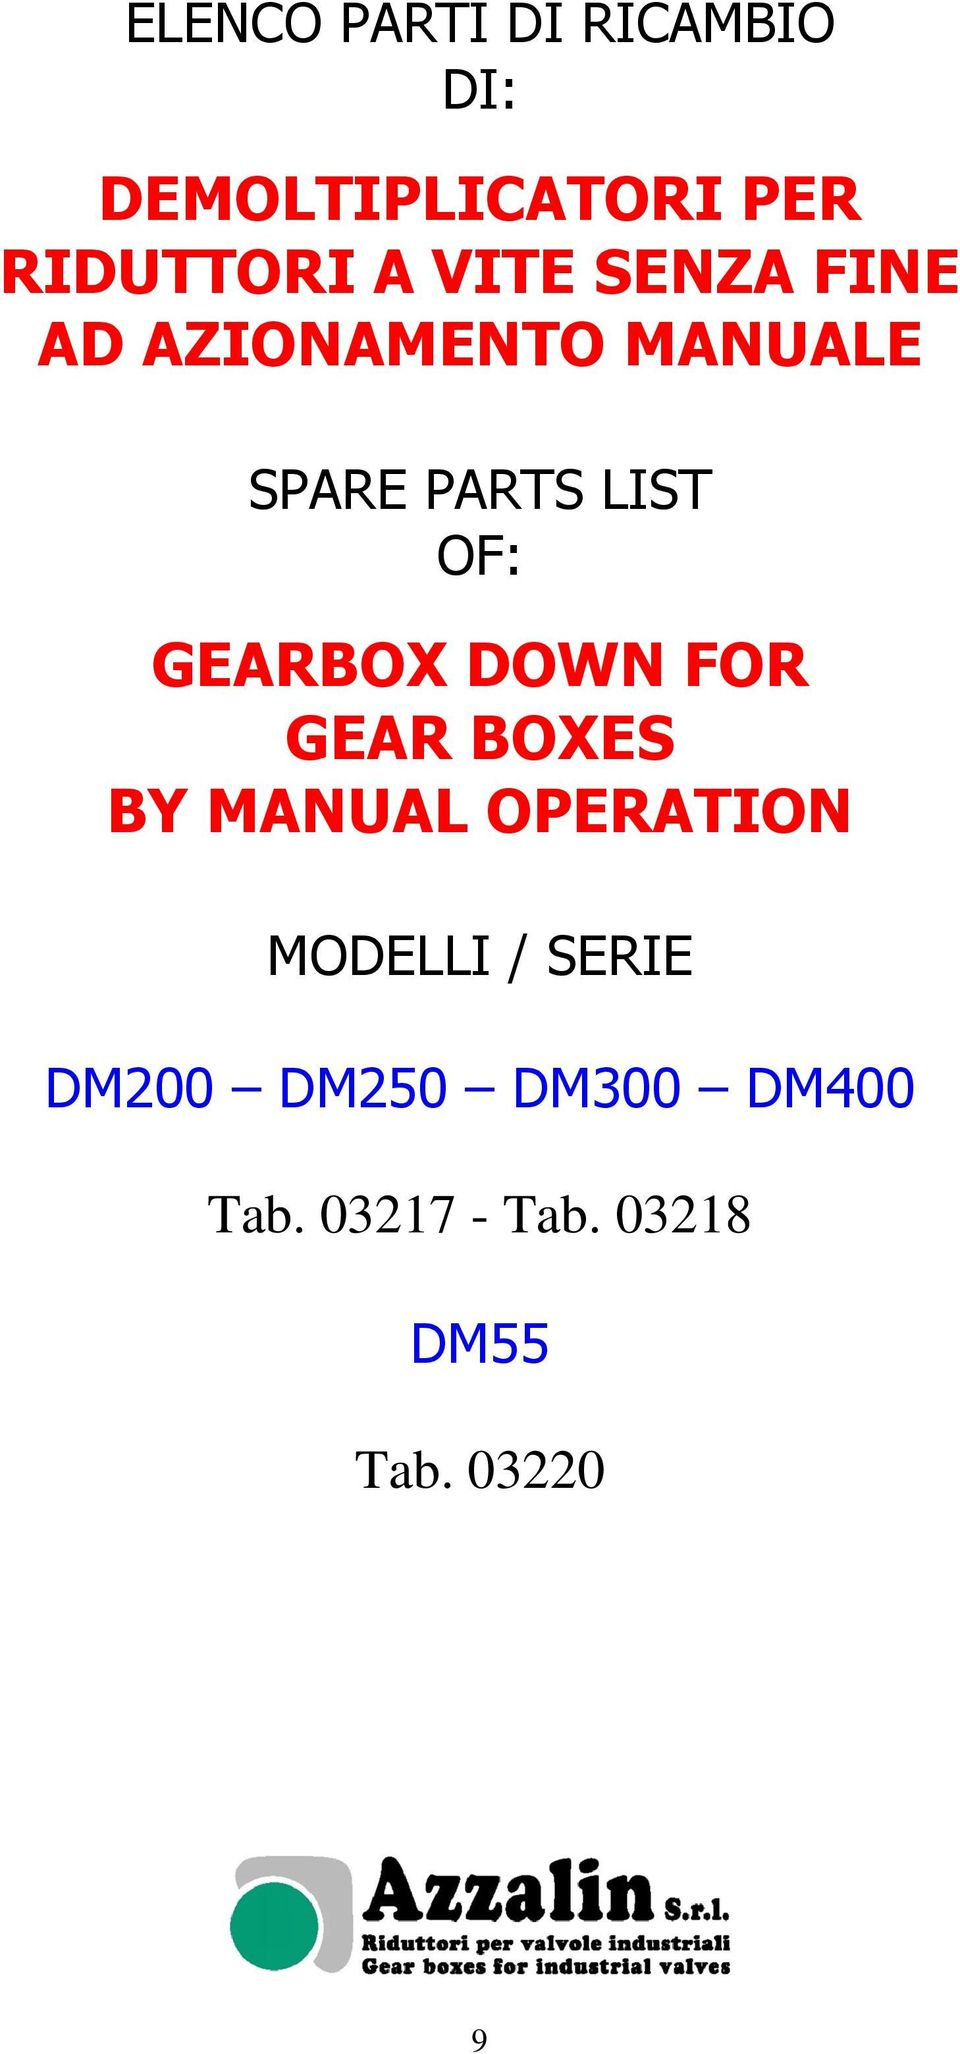 GEARBOX DOWN FOR GEAR BOXES BY MANUAL OPERATION MODELLI /